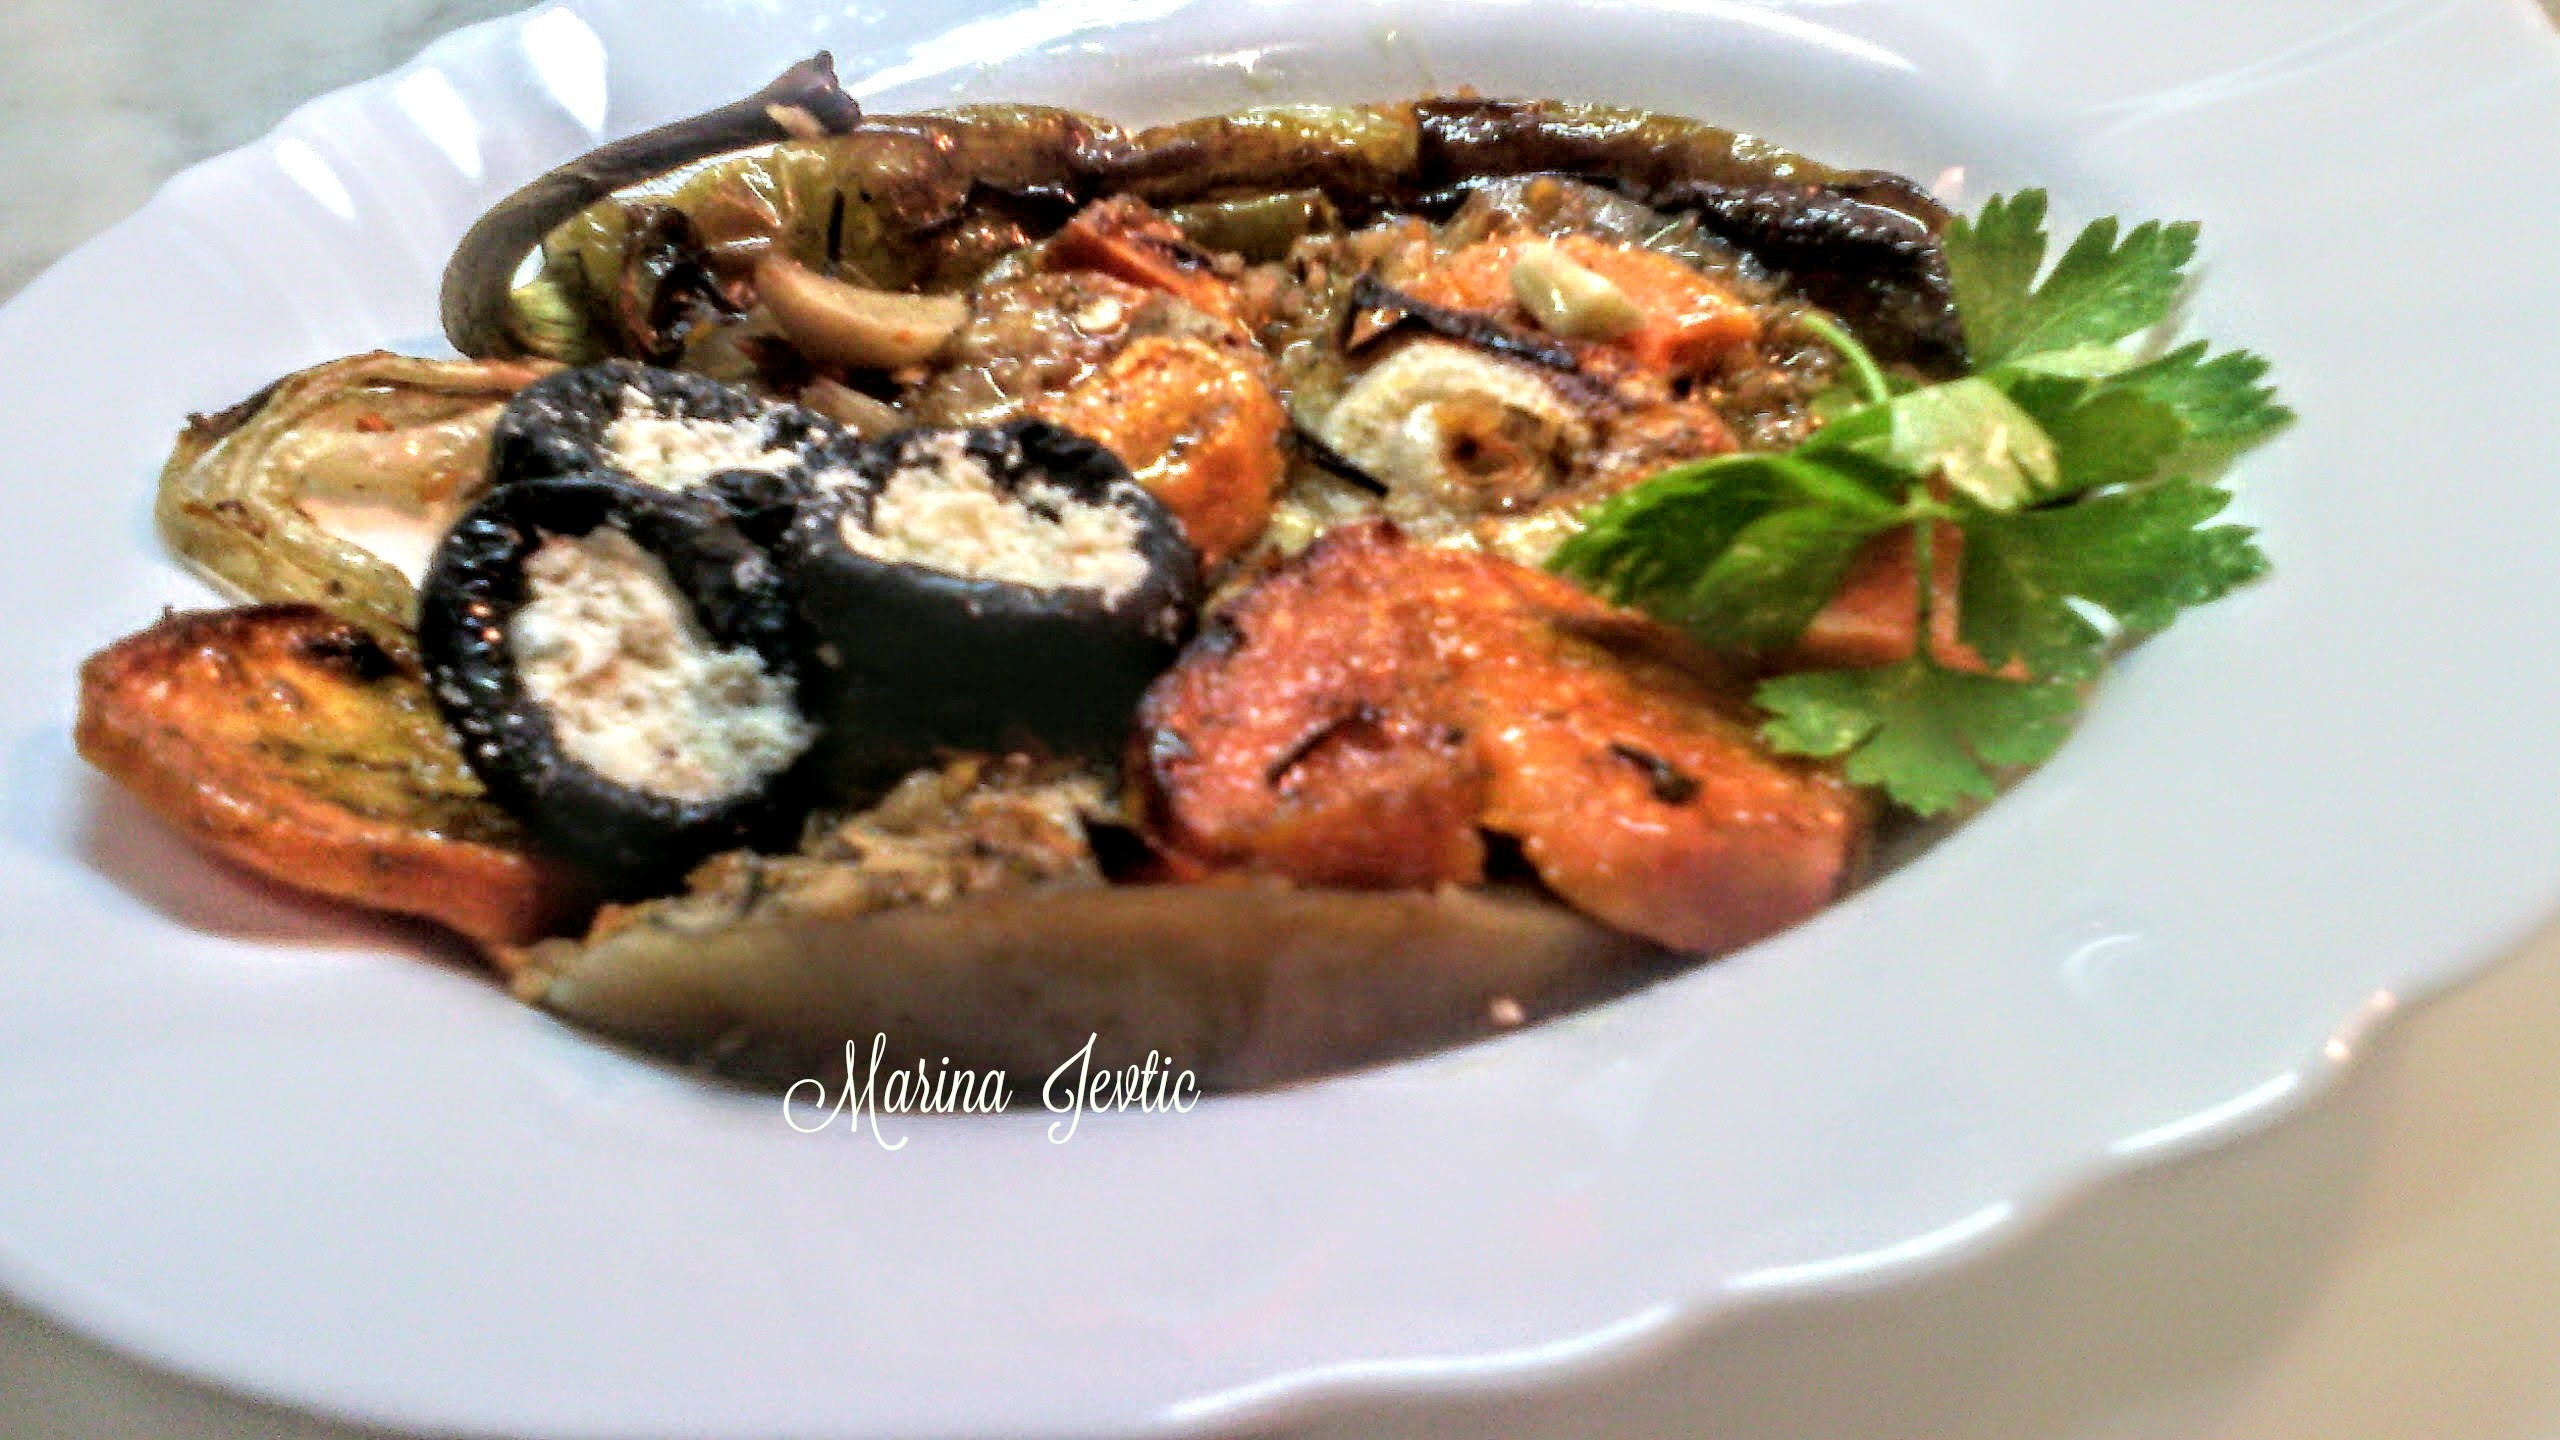 BATAT NA PATLIDZANU SA ZACINIMA & SWEETPOTATO ON EGGPLANT WITH SPICES